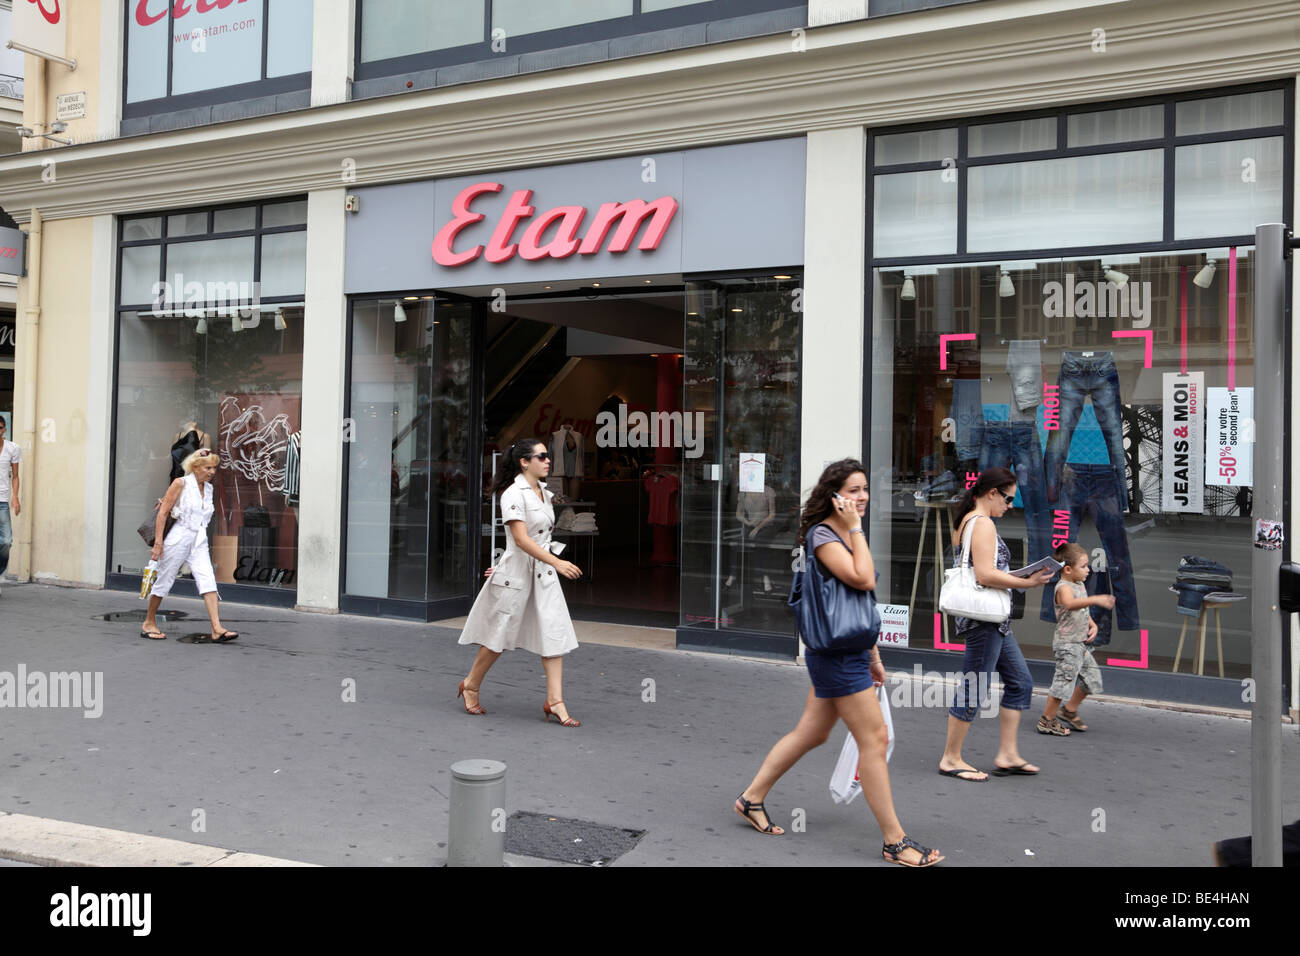 Etam Lingerie online store. If you are a modern persona and online shopping is no problem for you, or you just don't want to run around shops, you will certainly appreciate to buy Etam Lingerie products in an online store.